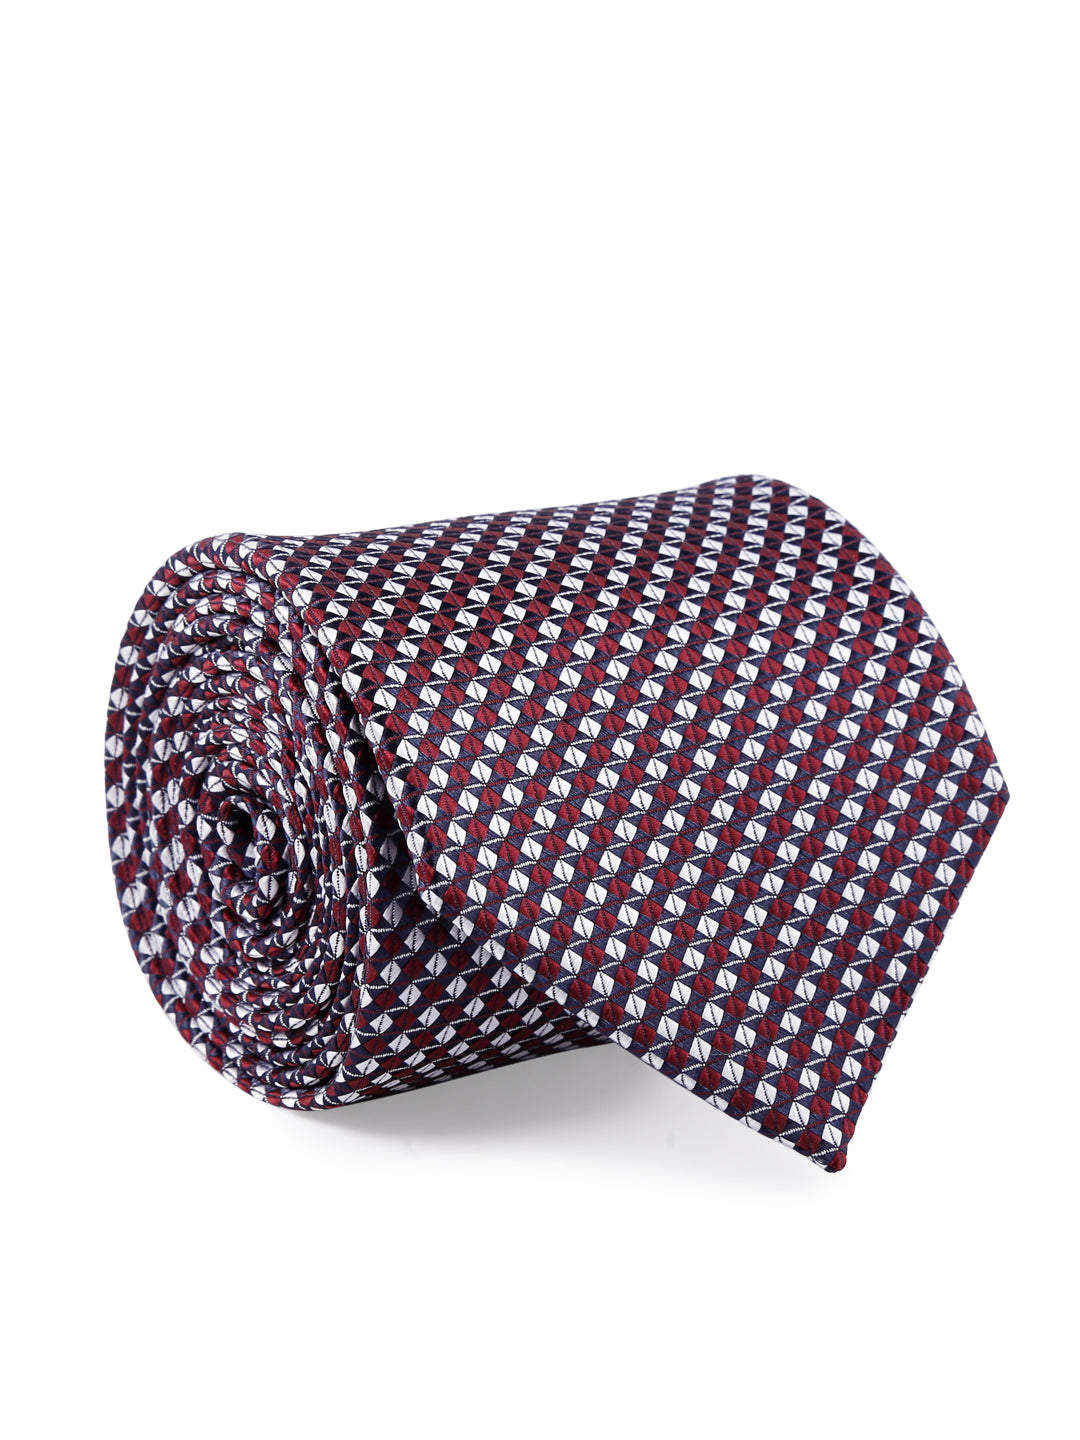 Zido Tie for Men TJQ249